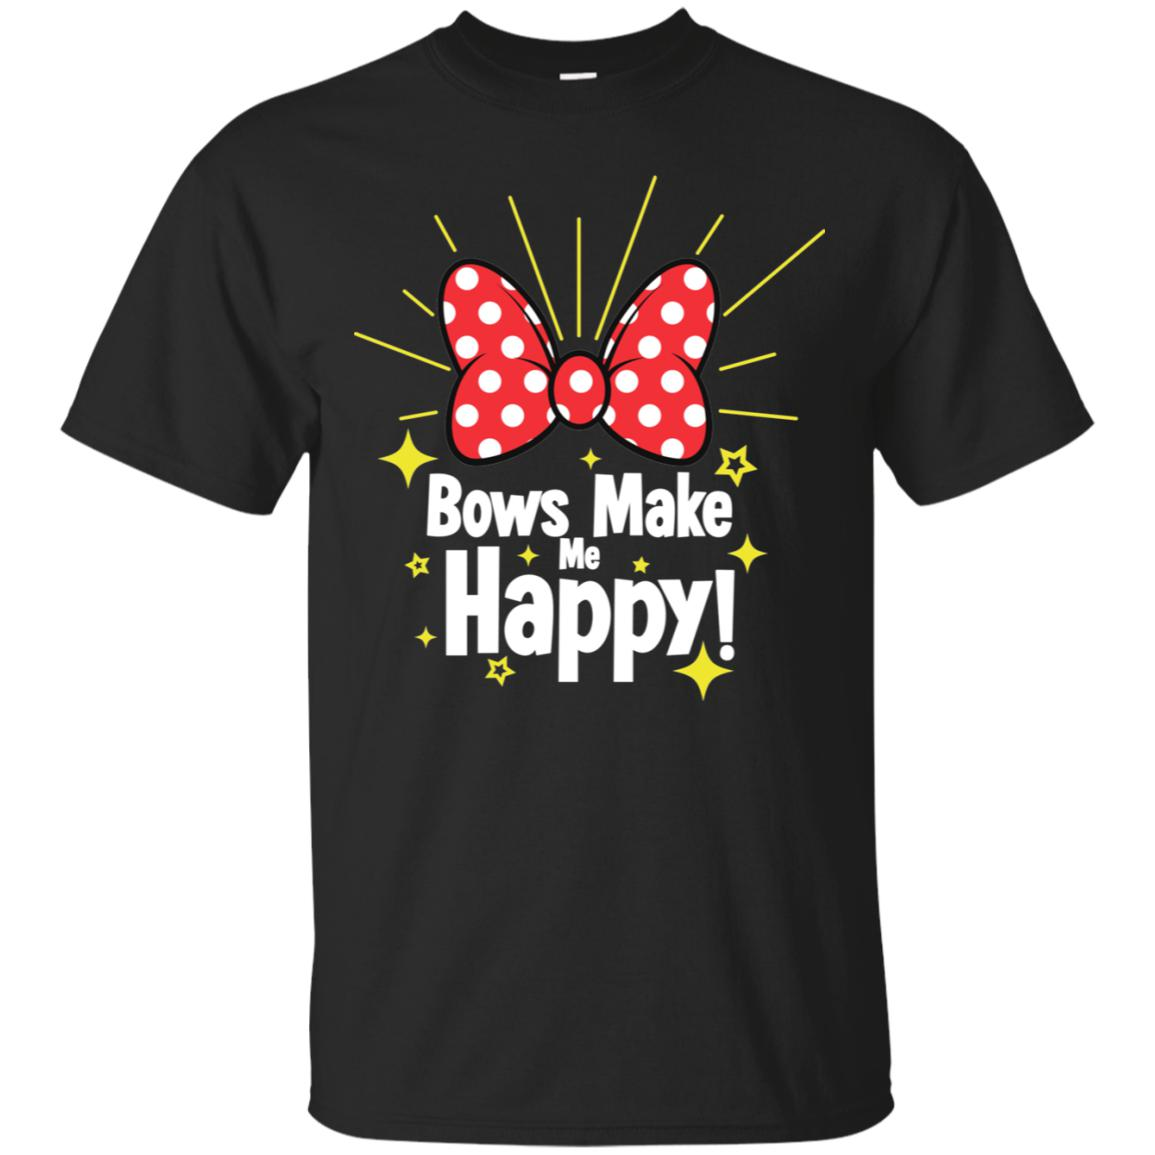 Bows Make Me Happy - Gildan Ultra Cotton T-Shirt